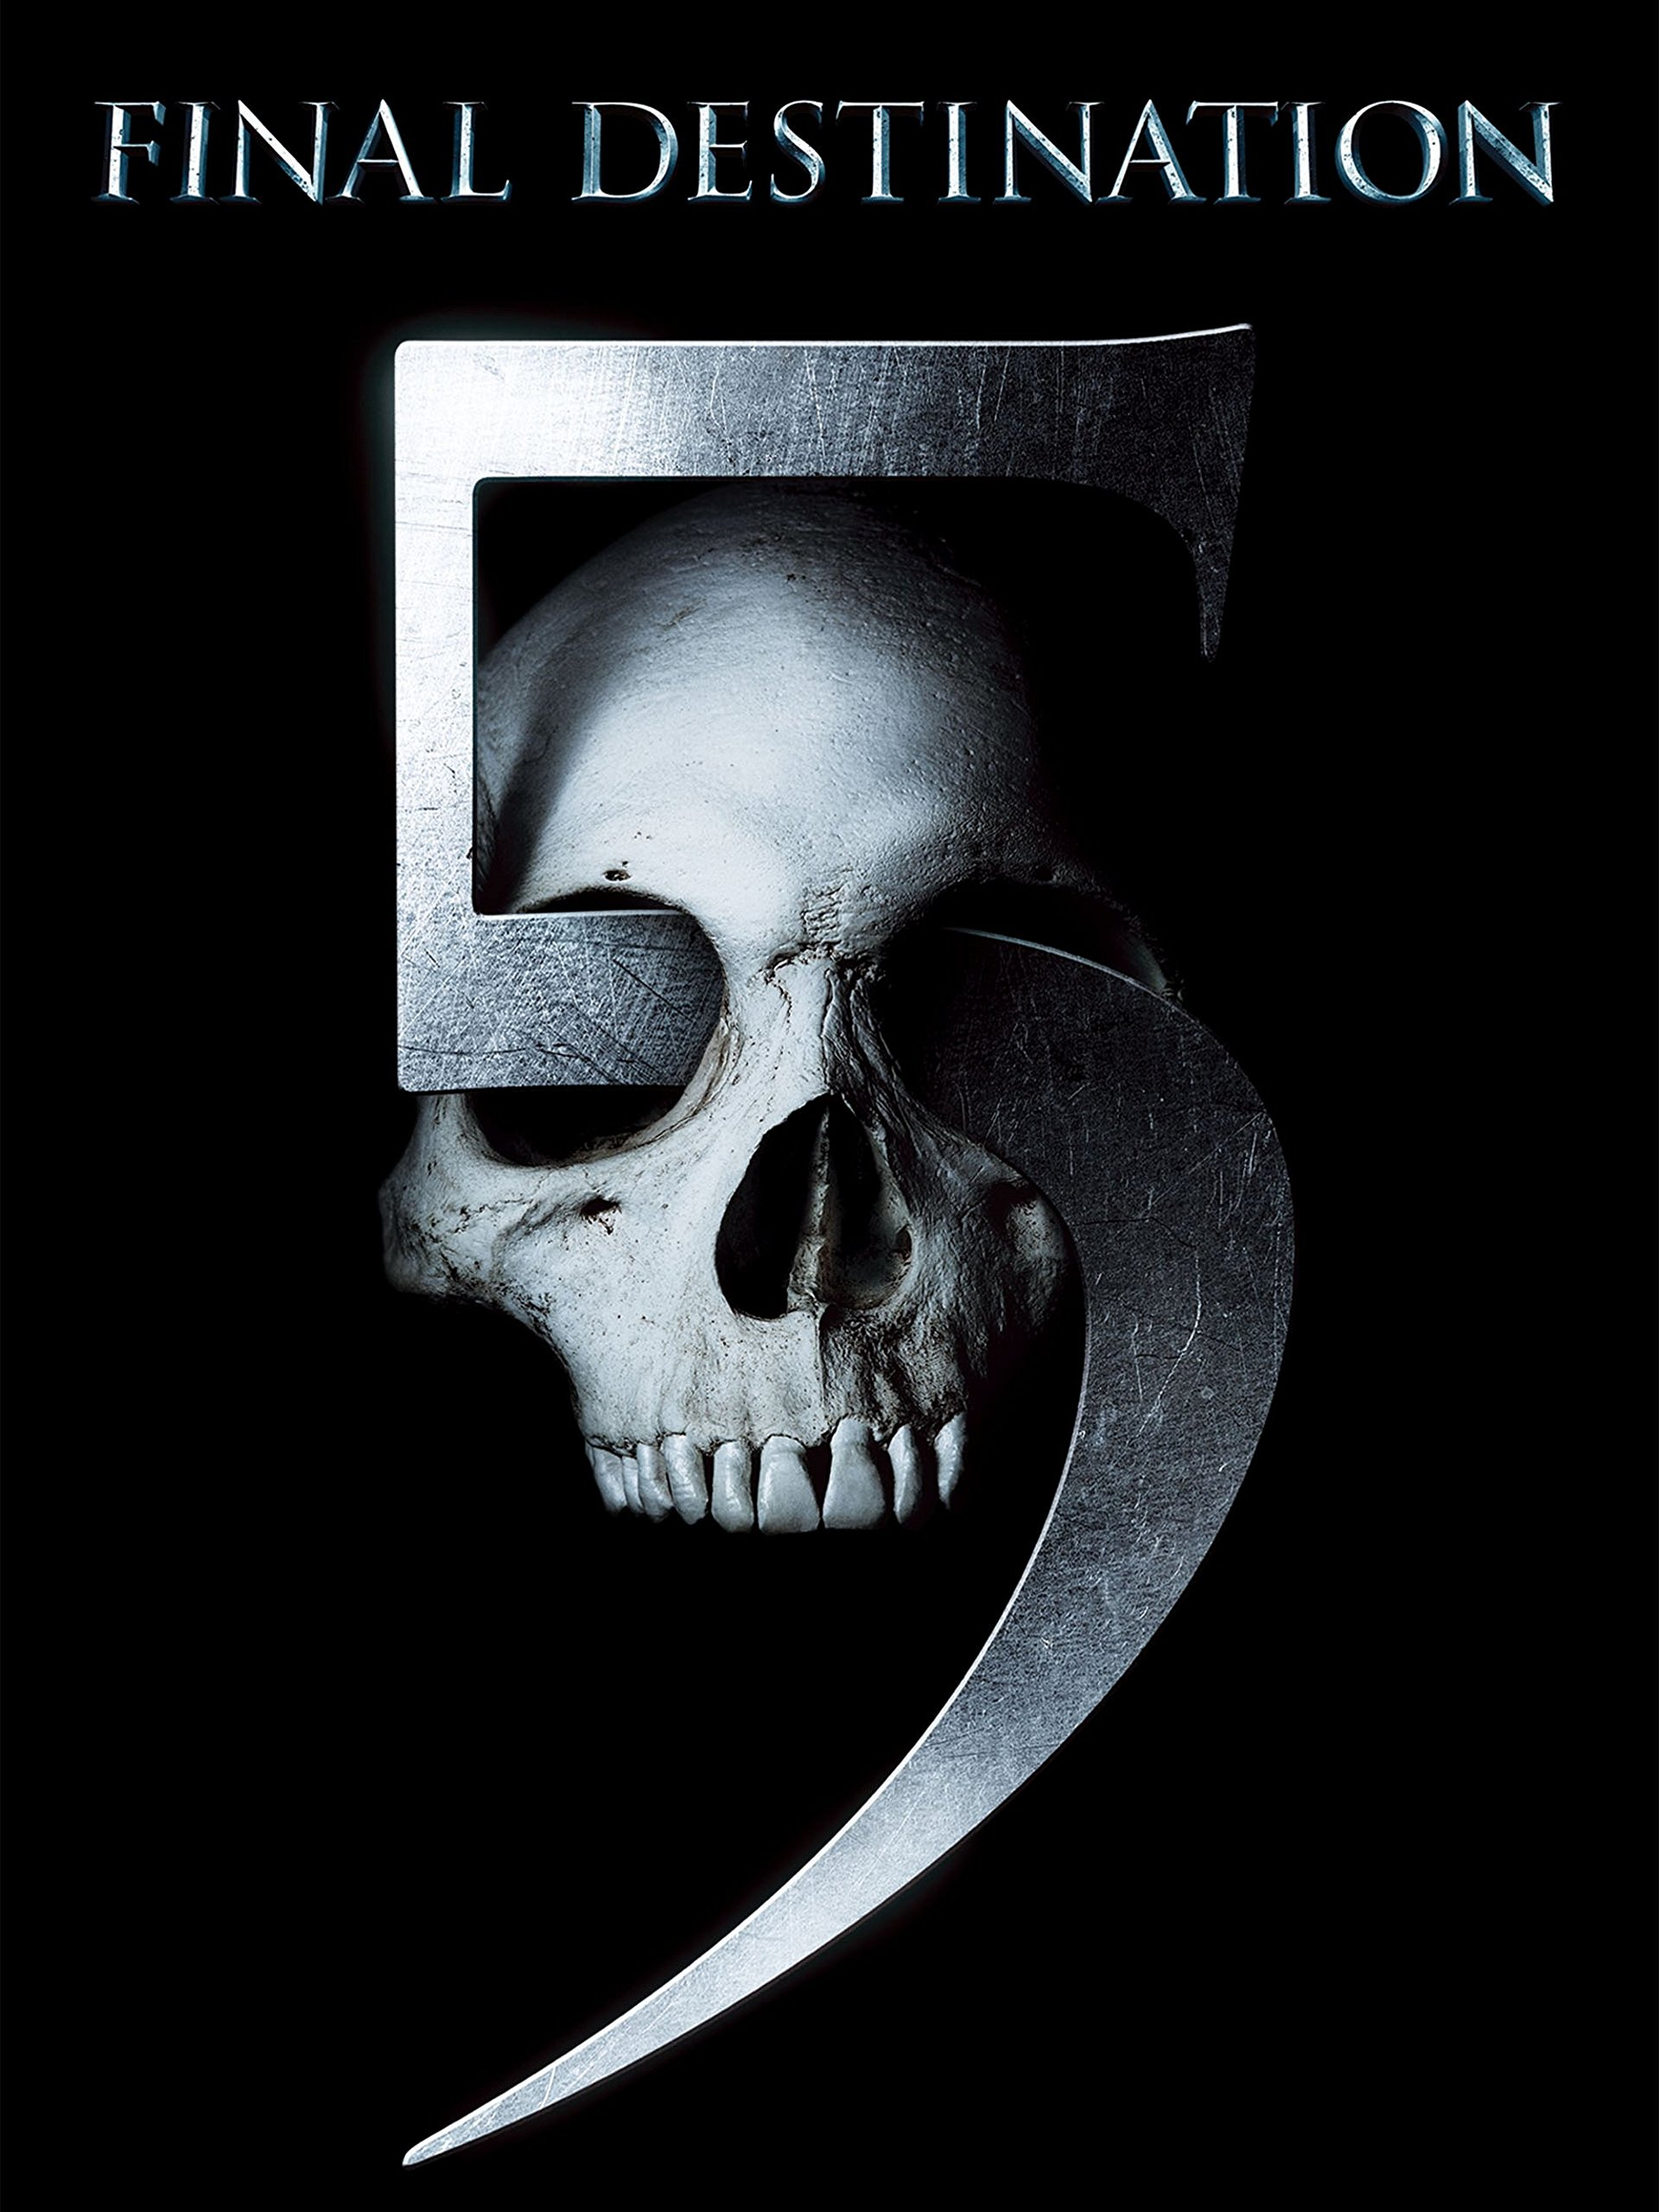 final destination 5 full movie download link